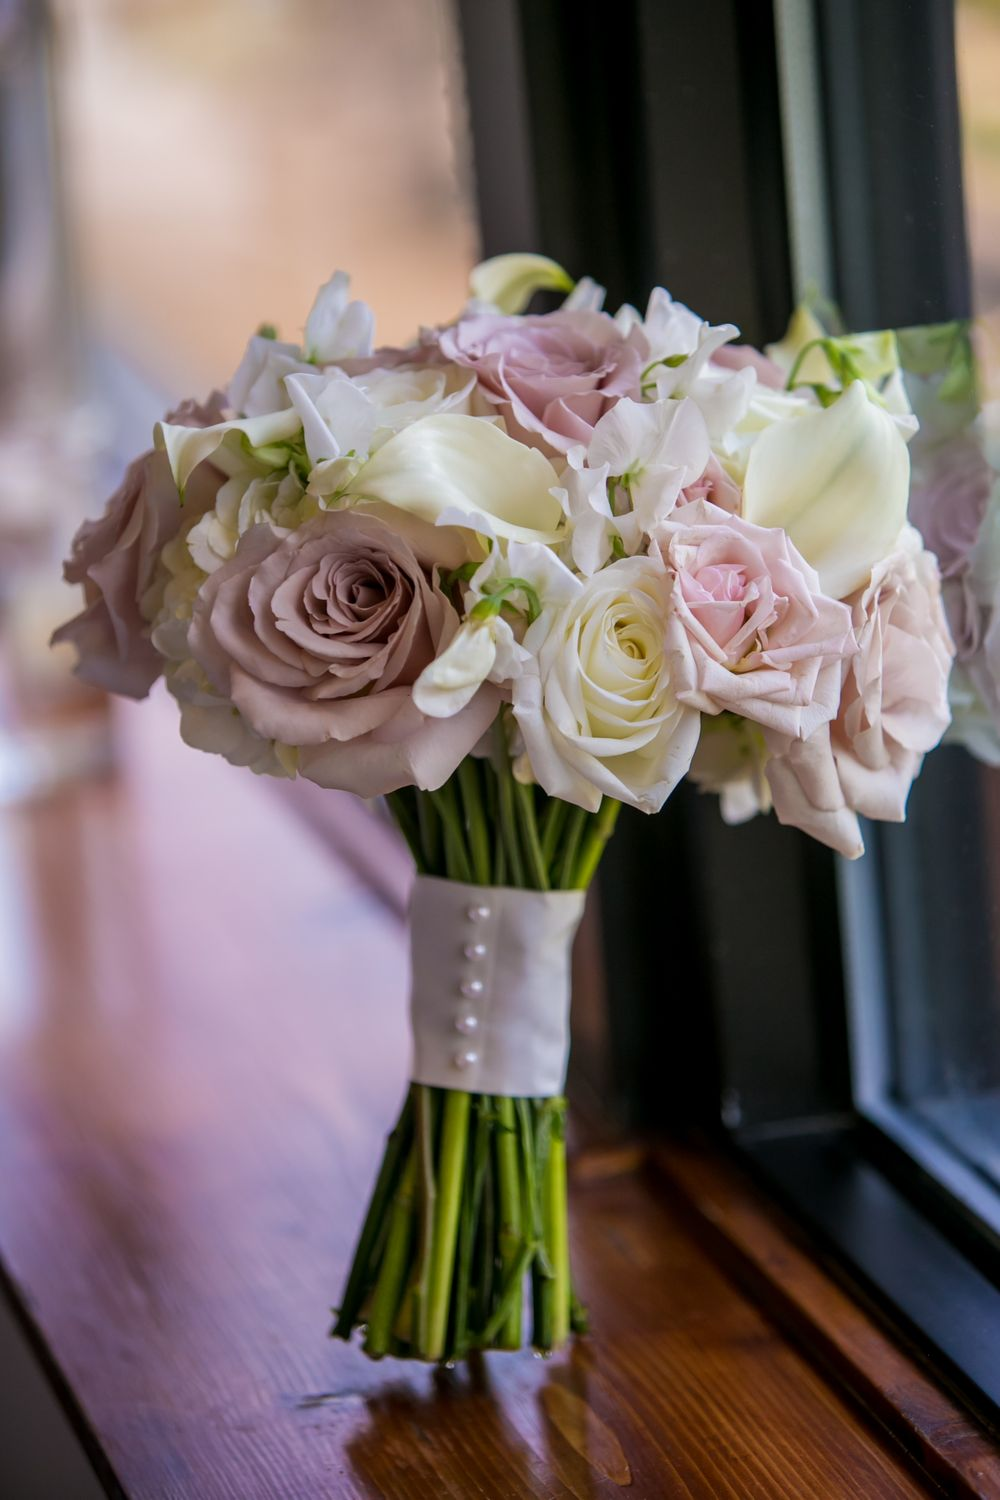 Ashley's bridal bouquet in a window before a wedding at at Stone River in West Columbia, SC